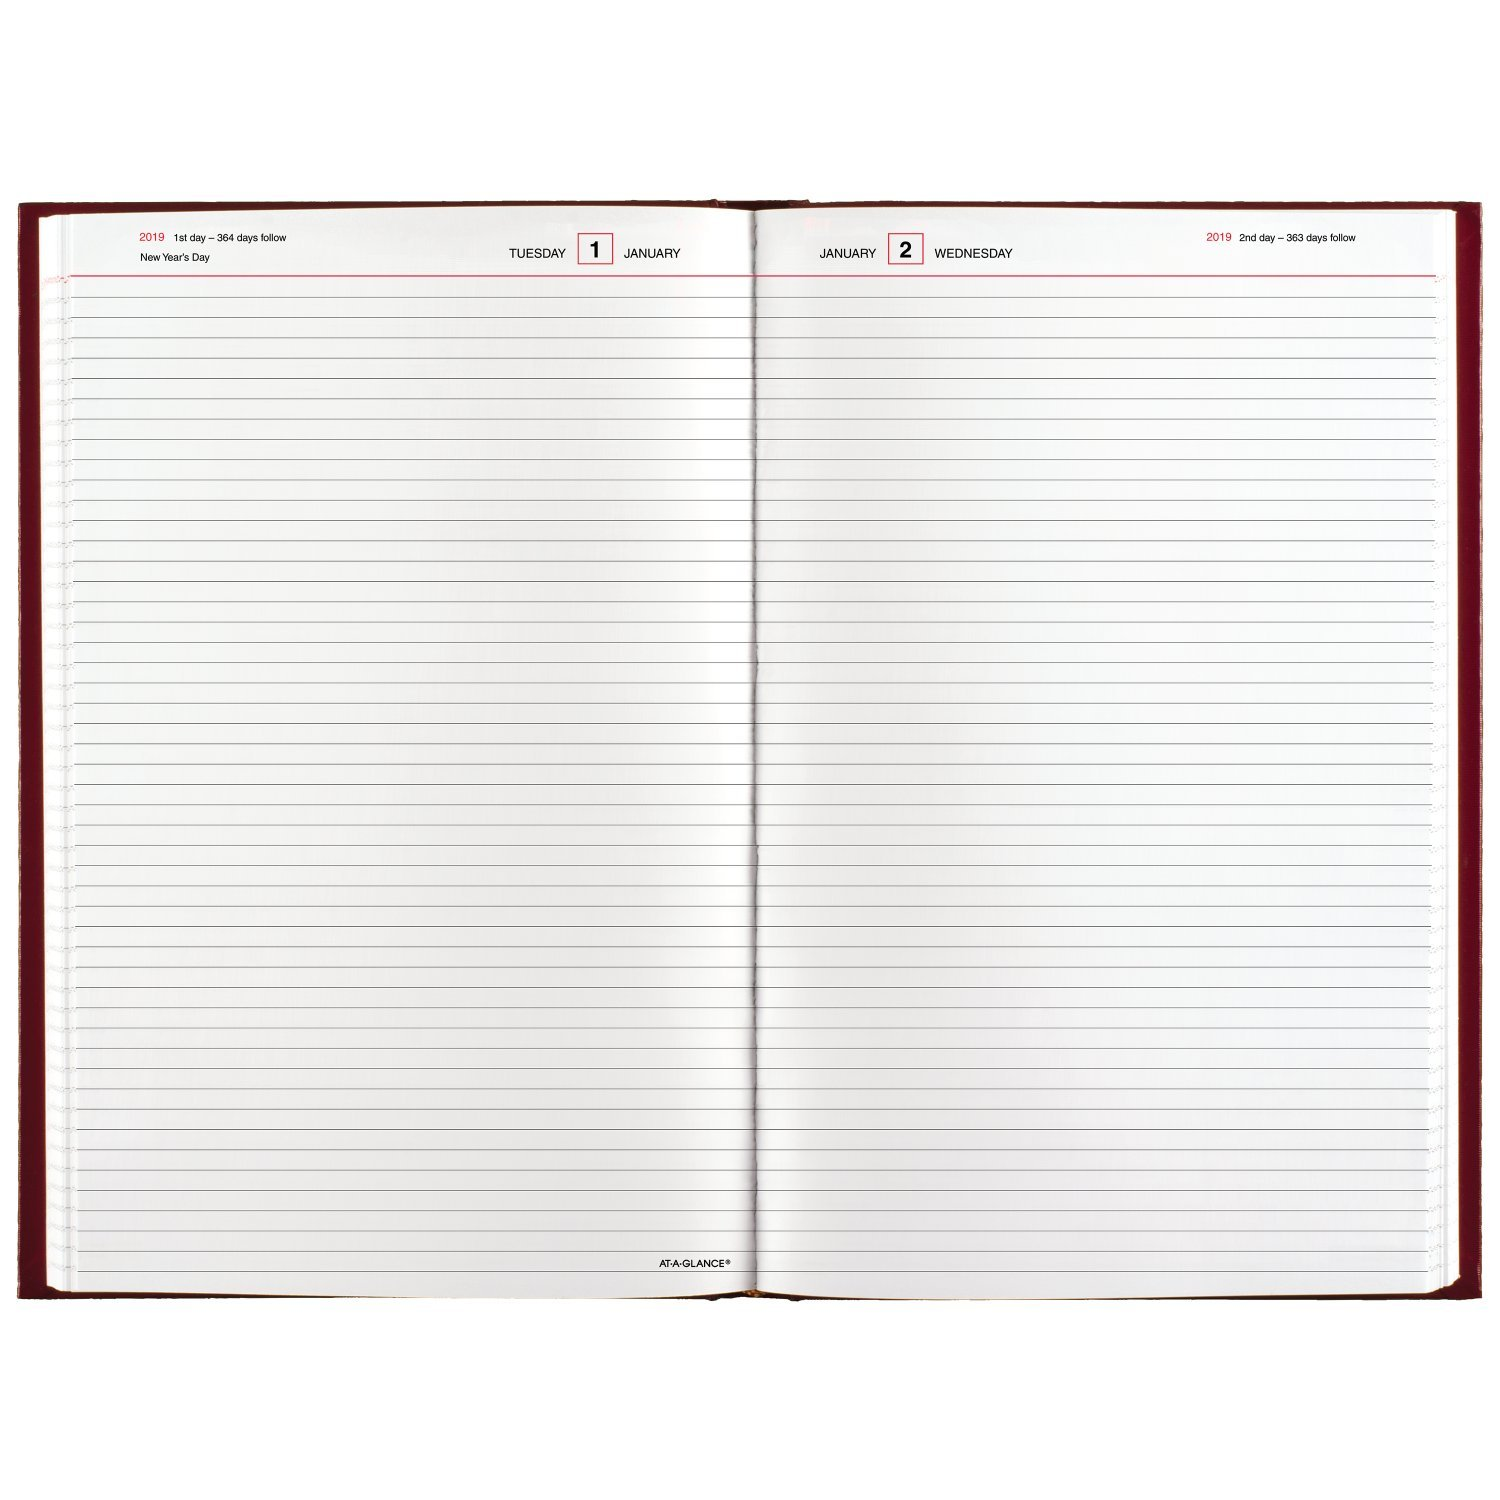 AT-A-GLANCE 2019 Daily Diary, January - December, 8-3/16'' x 13-7/16'', Standard, Red (SD38179) by AT-A-GLANCE (Image #2)